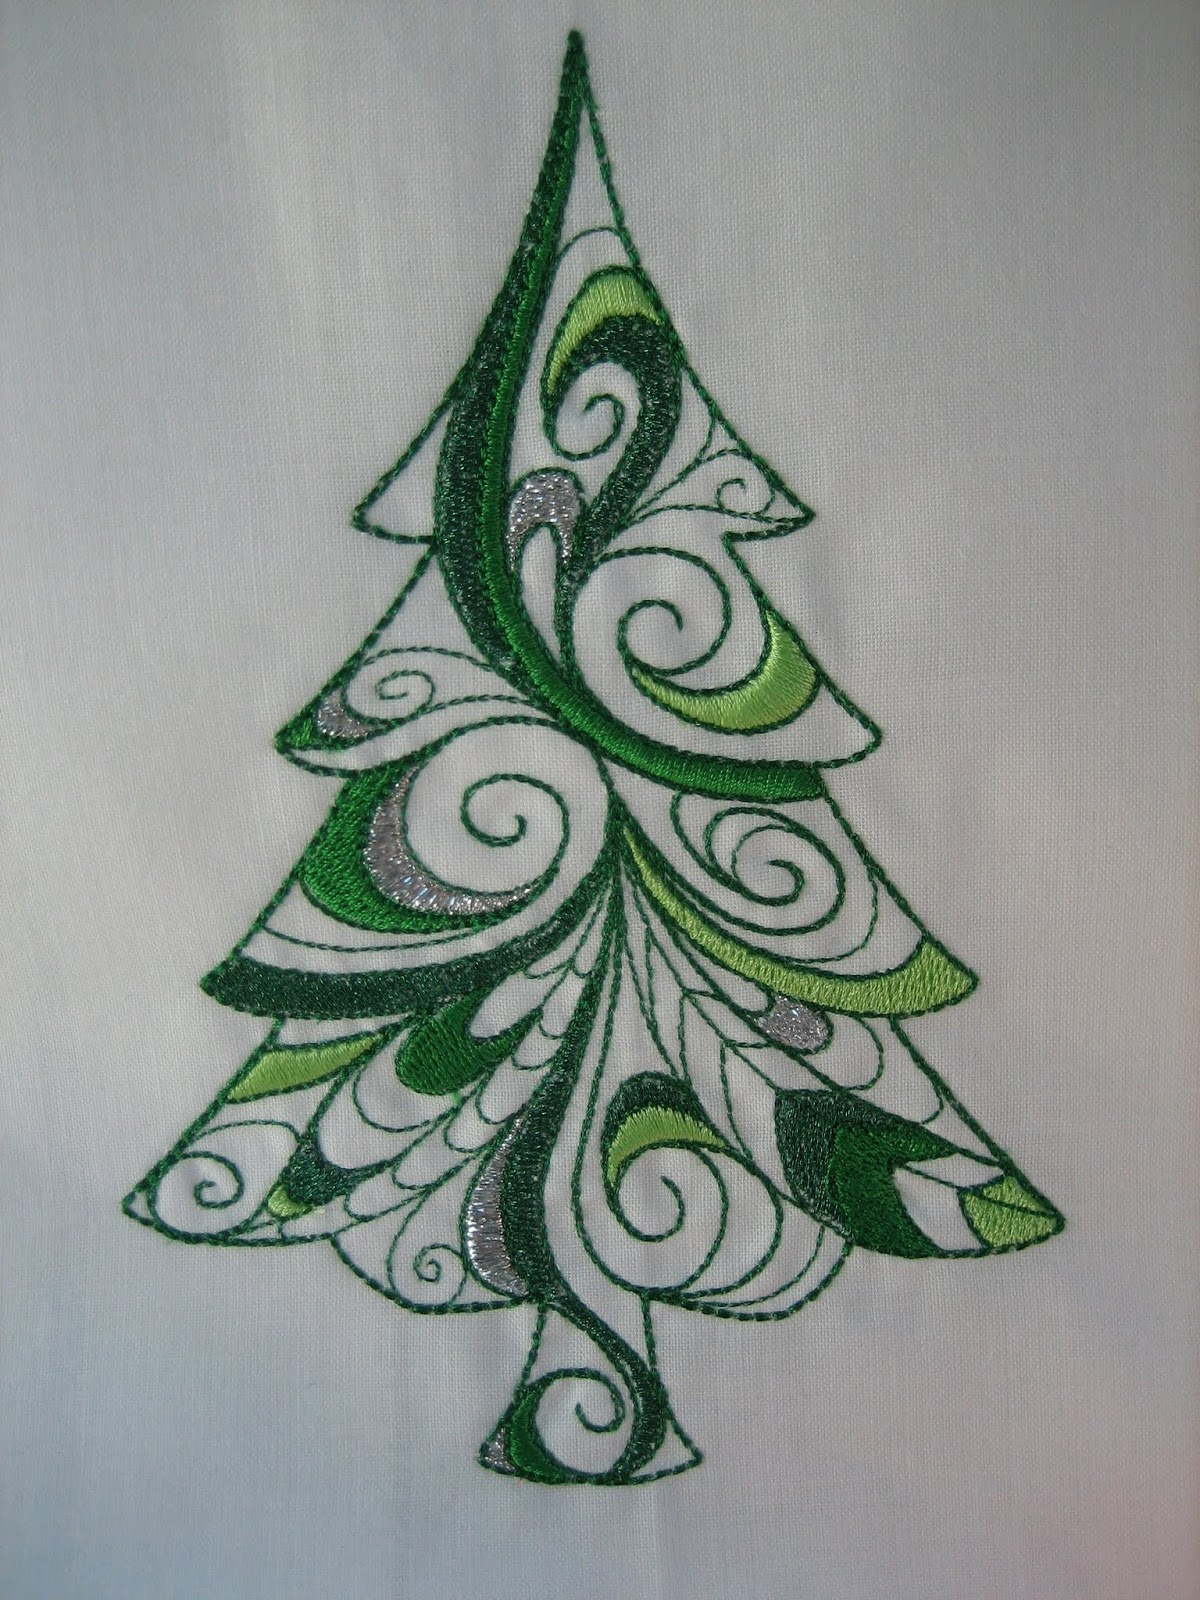 Machine embroidery christmas tree designs makaroka